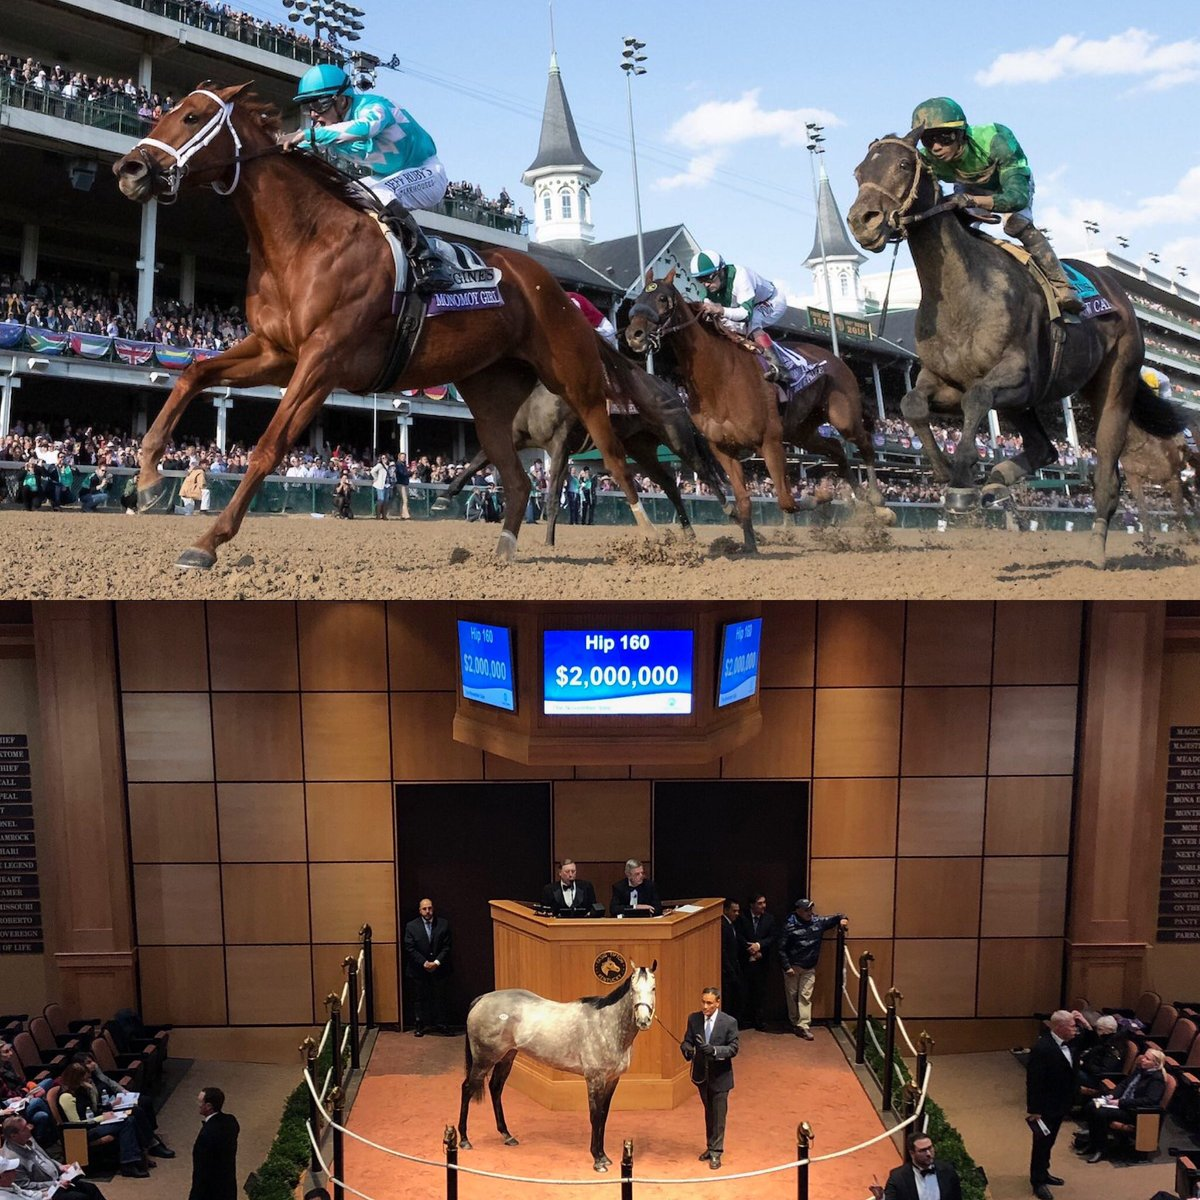 test Twitter Media - Marathon week is over. We ran 16 in @BreedersCup over 2 days. With a winner, (2) Seconds and (3) thirds. Then to @FasigTiptonCo @keenelandsales to sell 18/22 offered for $8,800,000. Takes a year of preparation, major client support and the best team to execute. Now a little 😴. https://t.co/xkCqcPeBeA